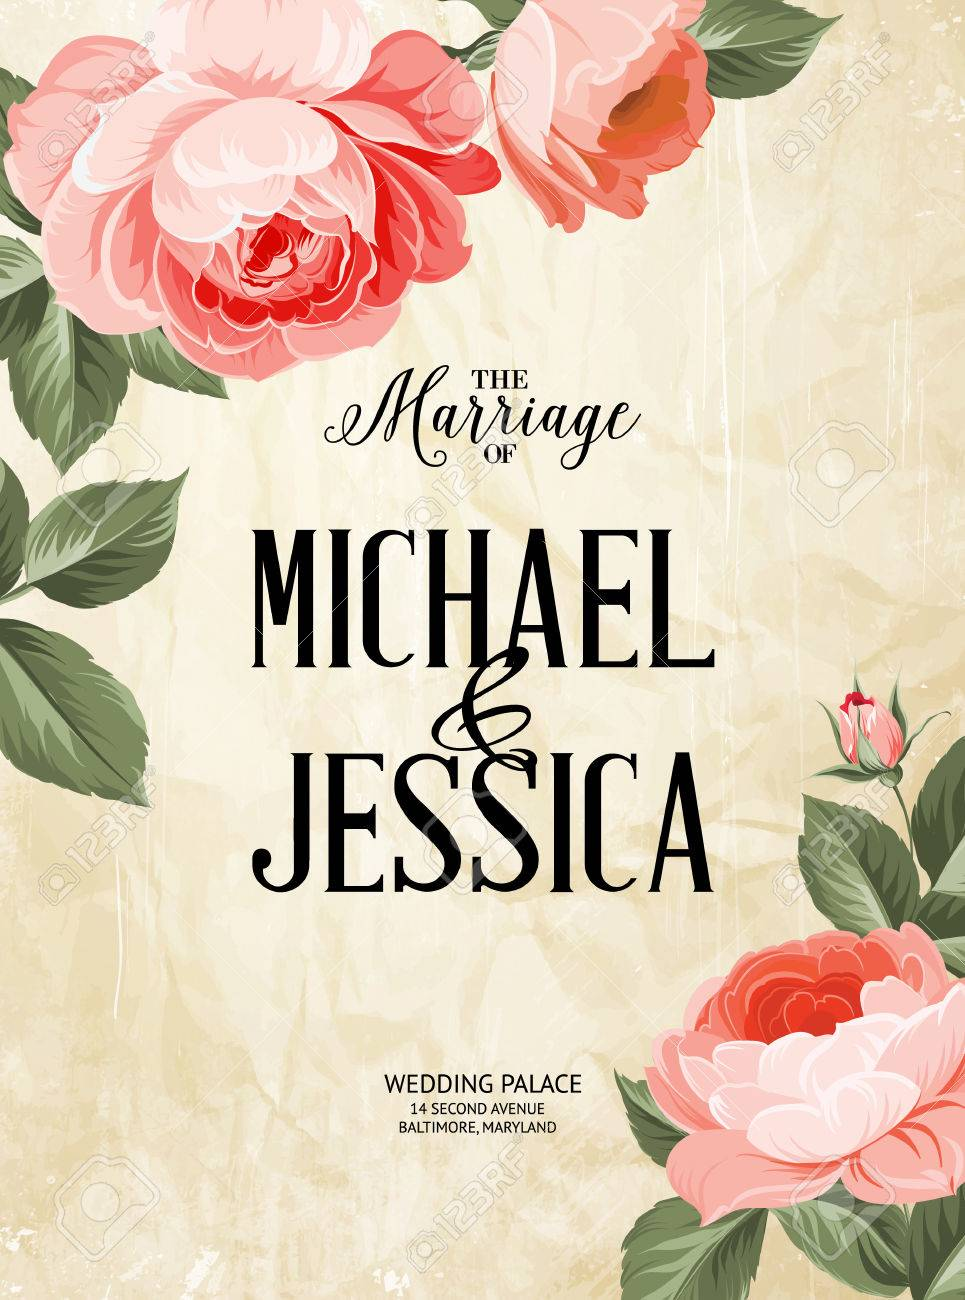 the marriage card wedding invitation card template frame of red flowers in vintage style